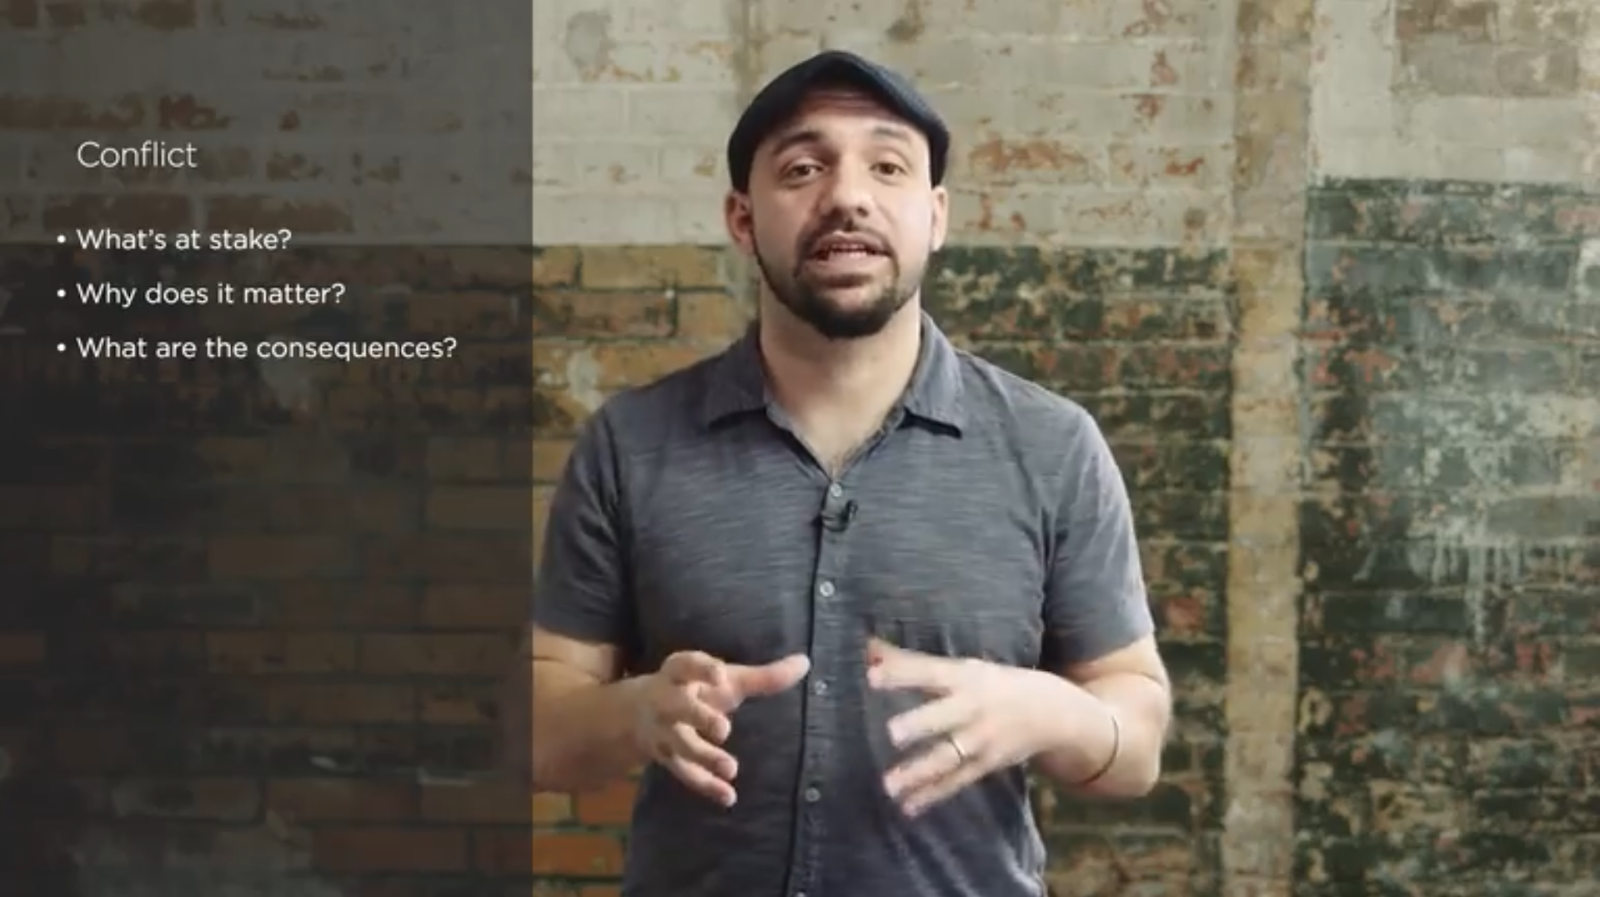 Skillshare teacher Daniel José Older explains some of the questions to ask yourself when it comes to the conflict in your story.